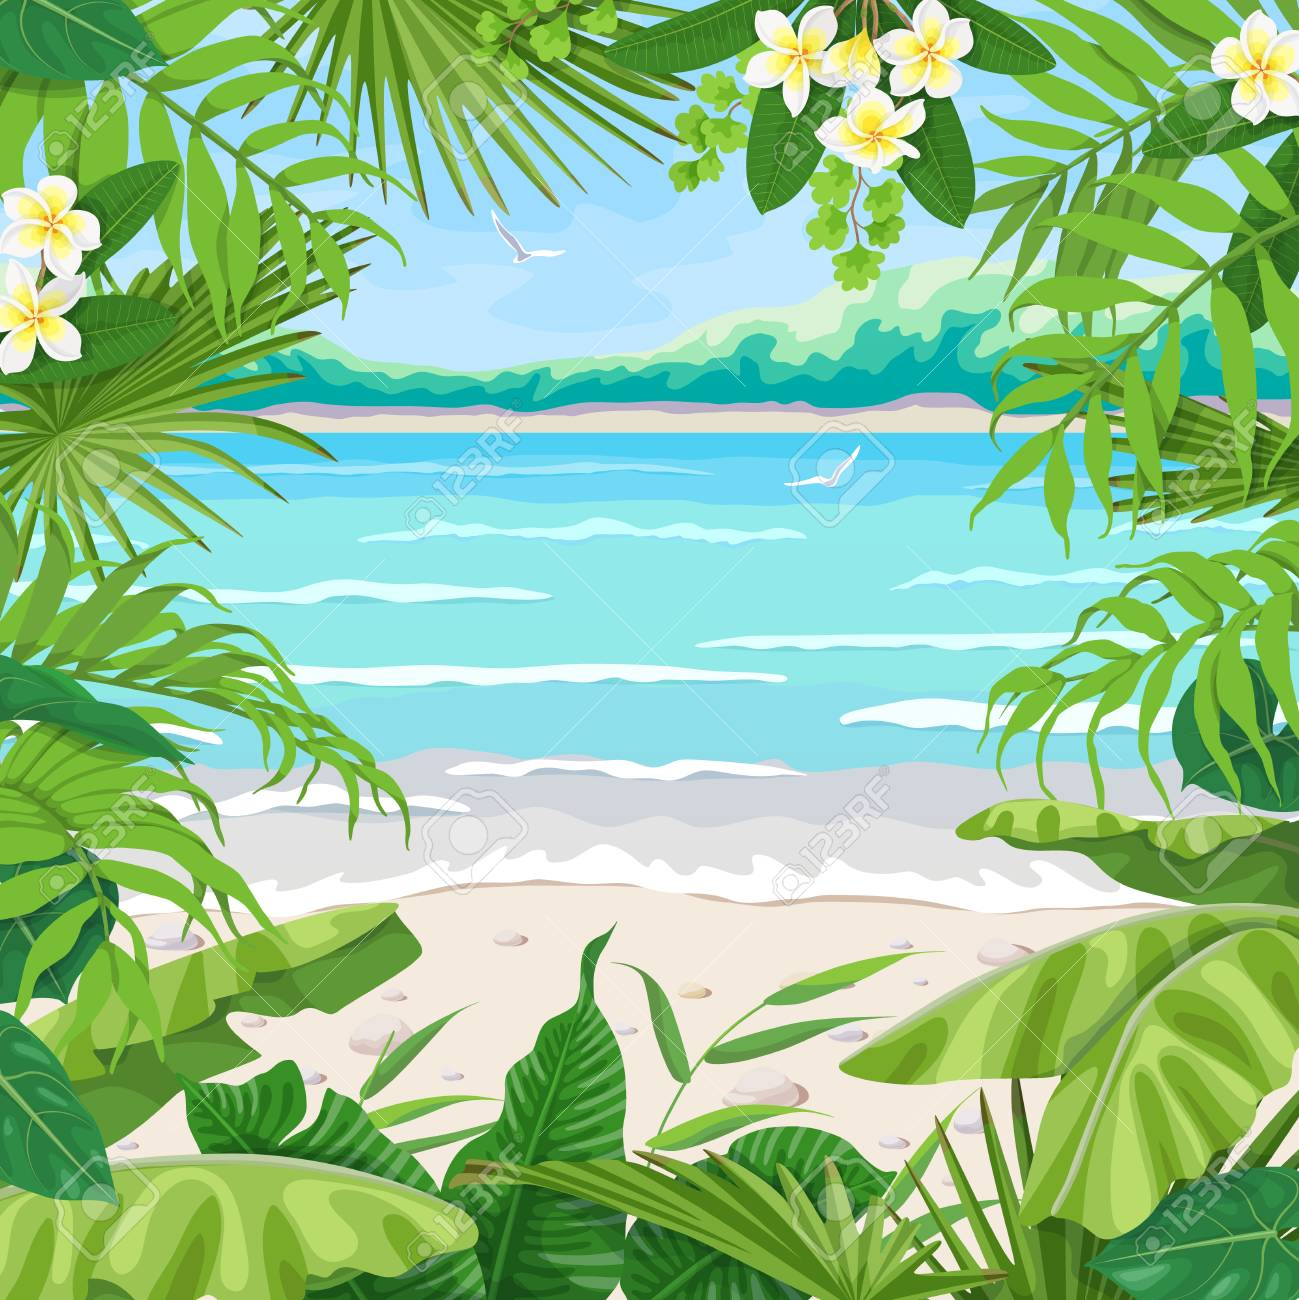 Summer background with tropical plants. Square floral frame on sea coast landscape. Tropic foliage border on seascape beach, waves, pebble, birds and distant trees. Vector flat illustration. - 104291730